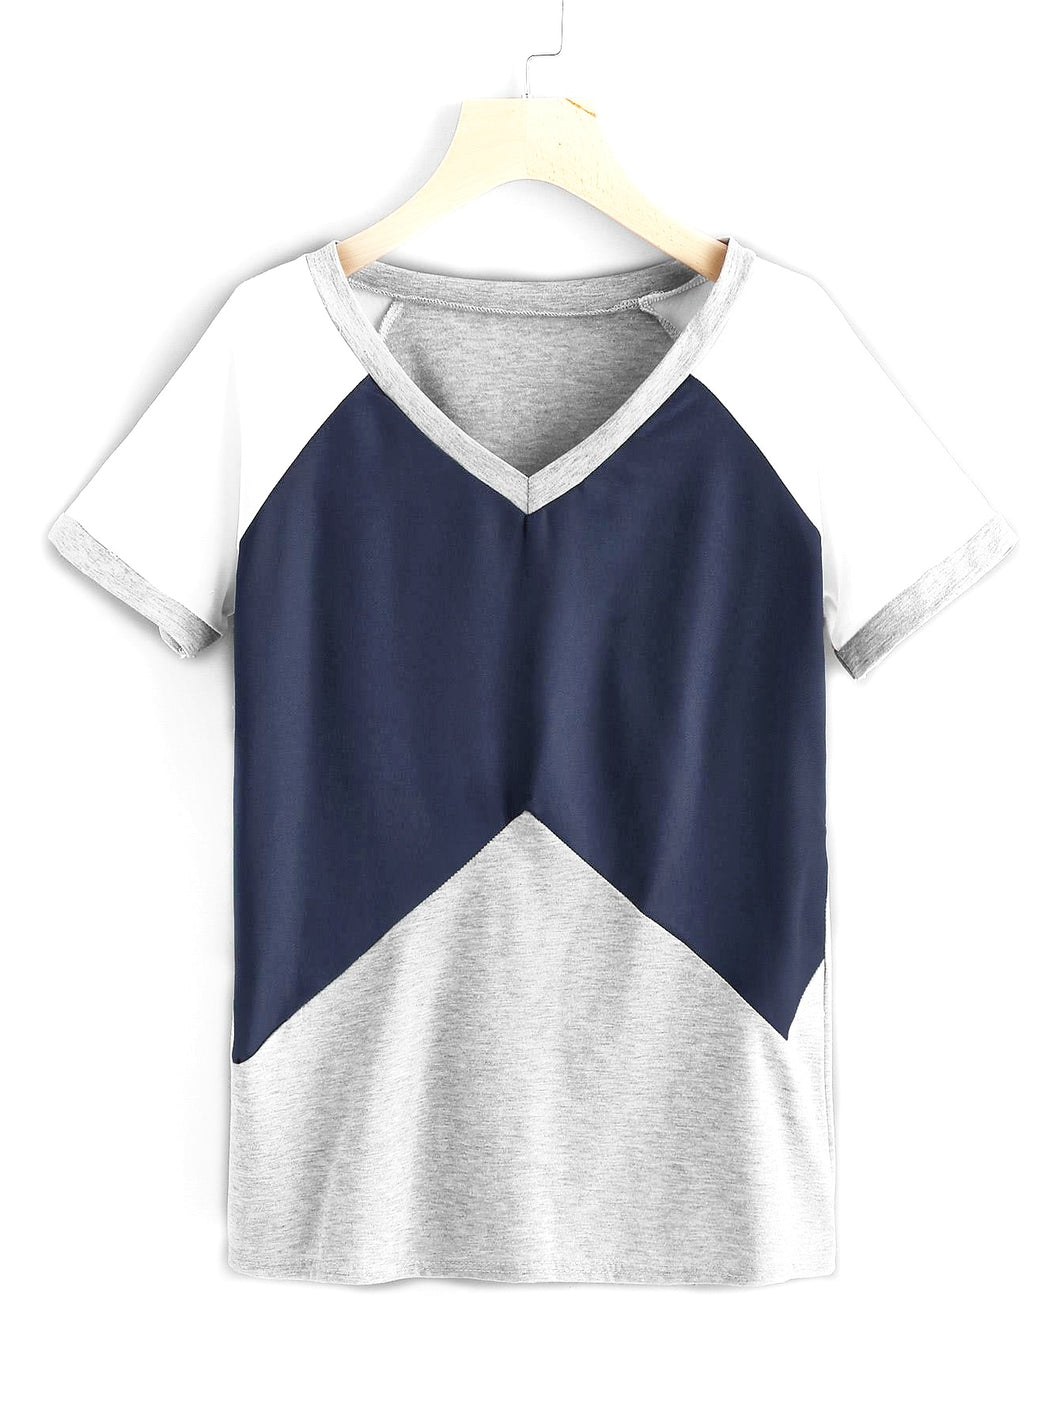 Didi Royale | Online Women's Boutique | Clothing | Judith Cut And Sew Contrast Raglan Sleeve Tee